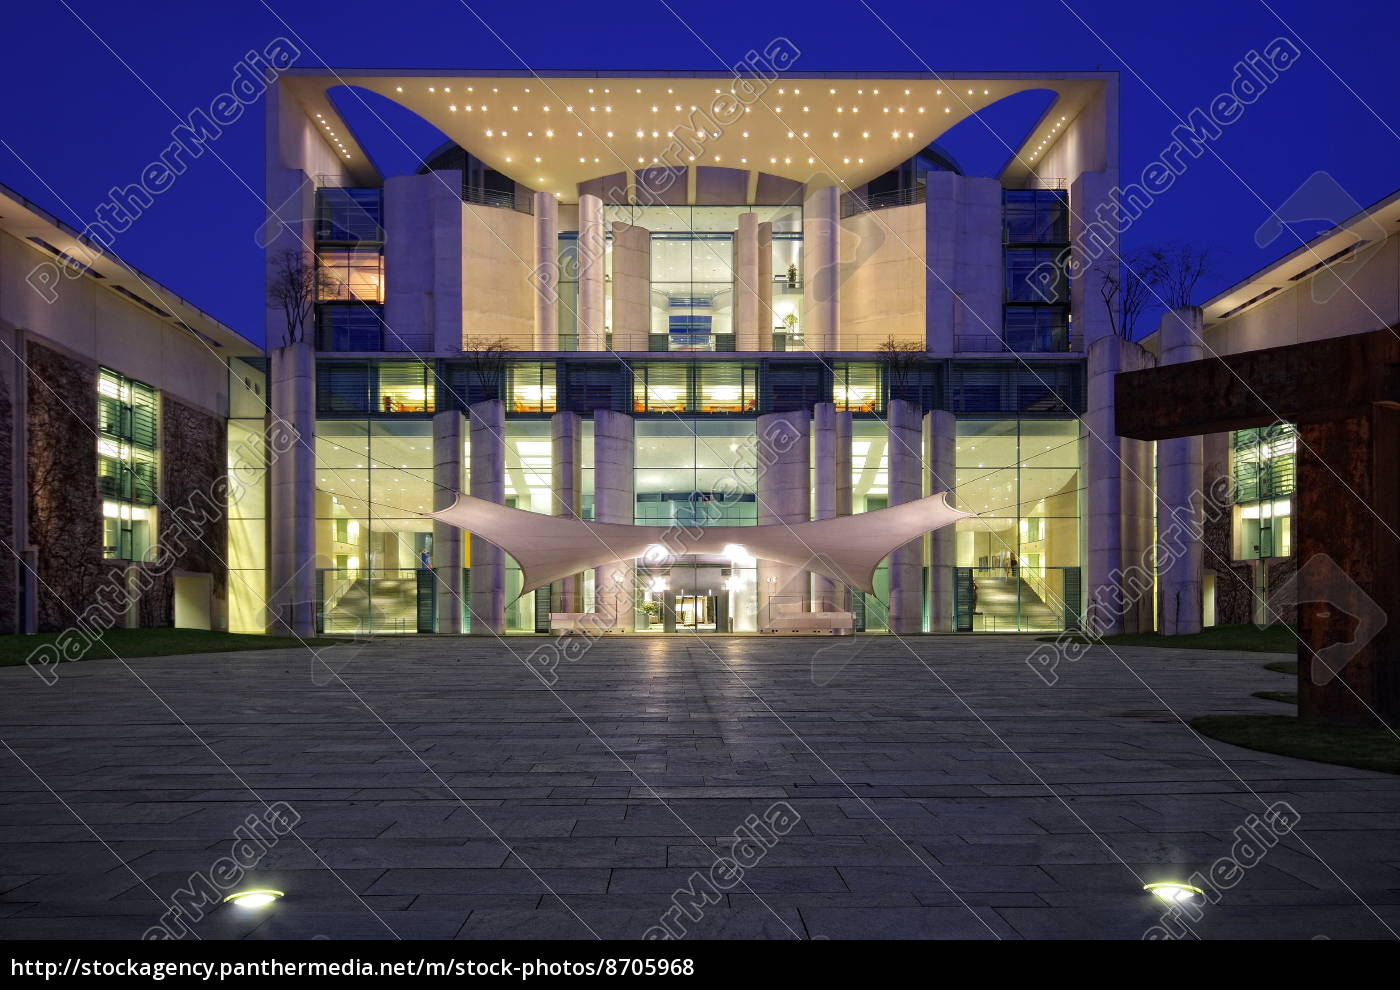 chancellery, at, the, blue, hour - 8705968